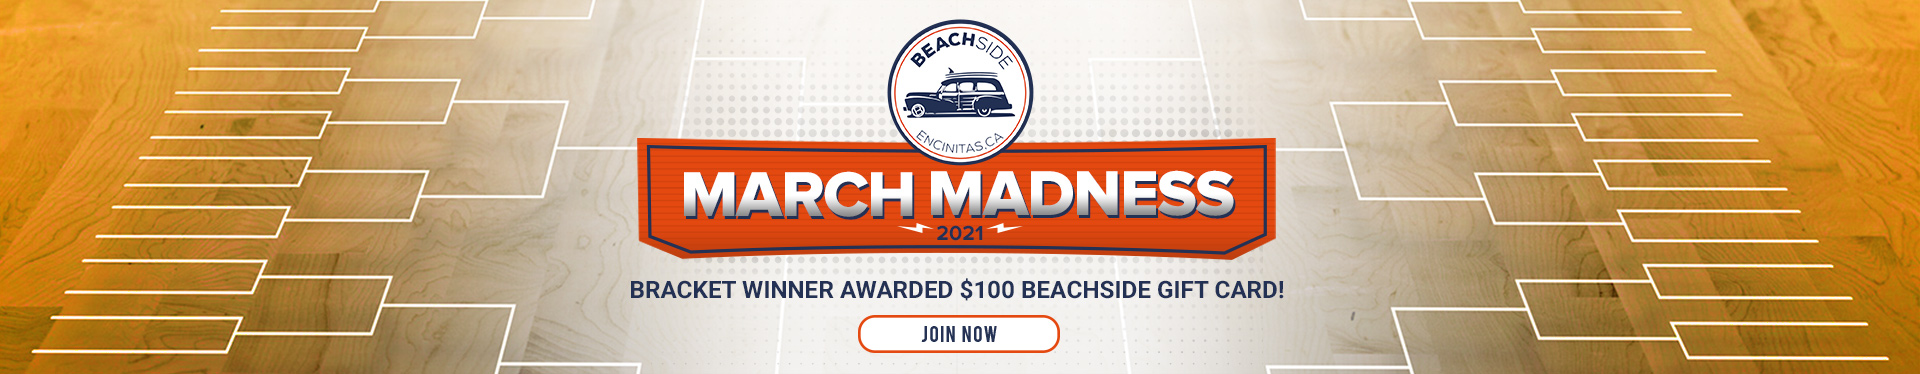 March Madness 2021 Bracket Challenge